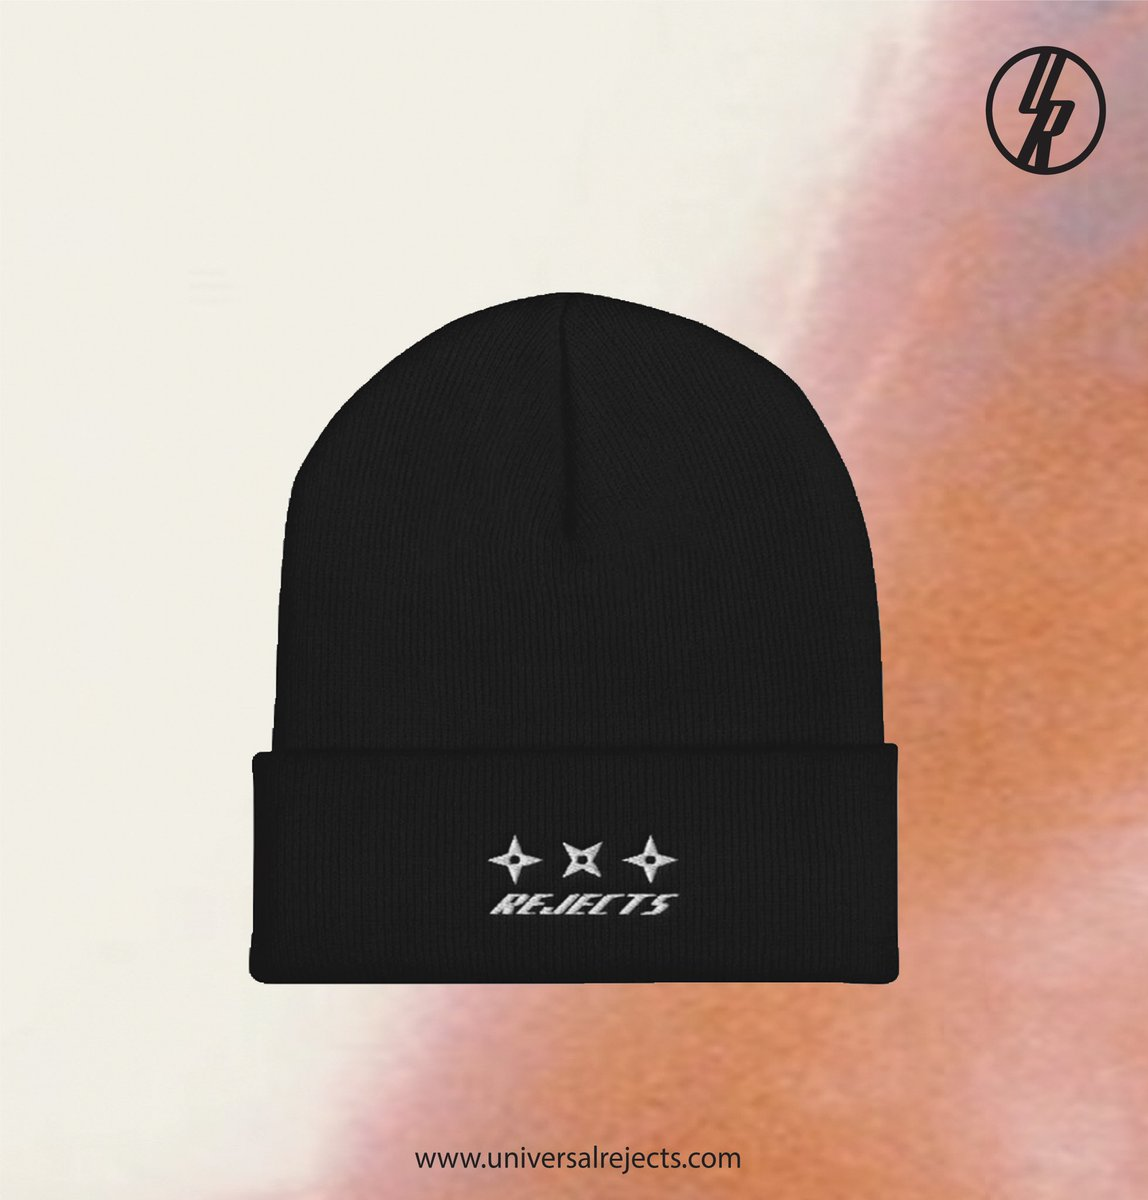 Universal Reject Beanies available online now!! #NationalHatDay